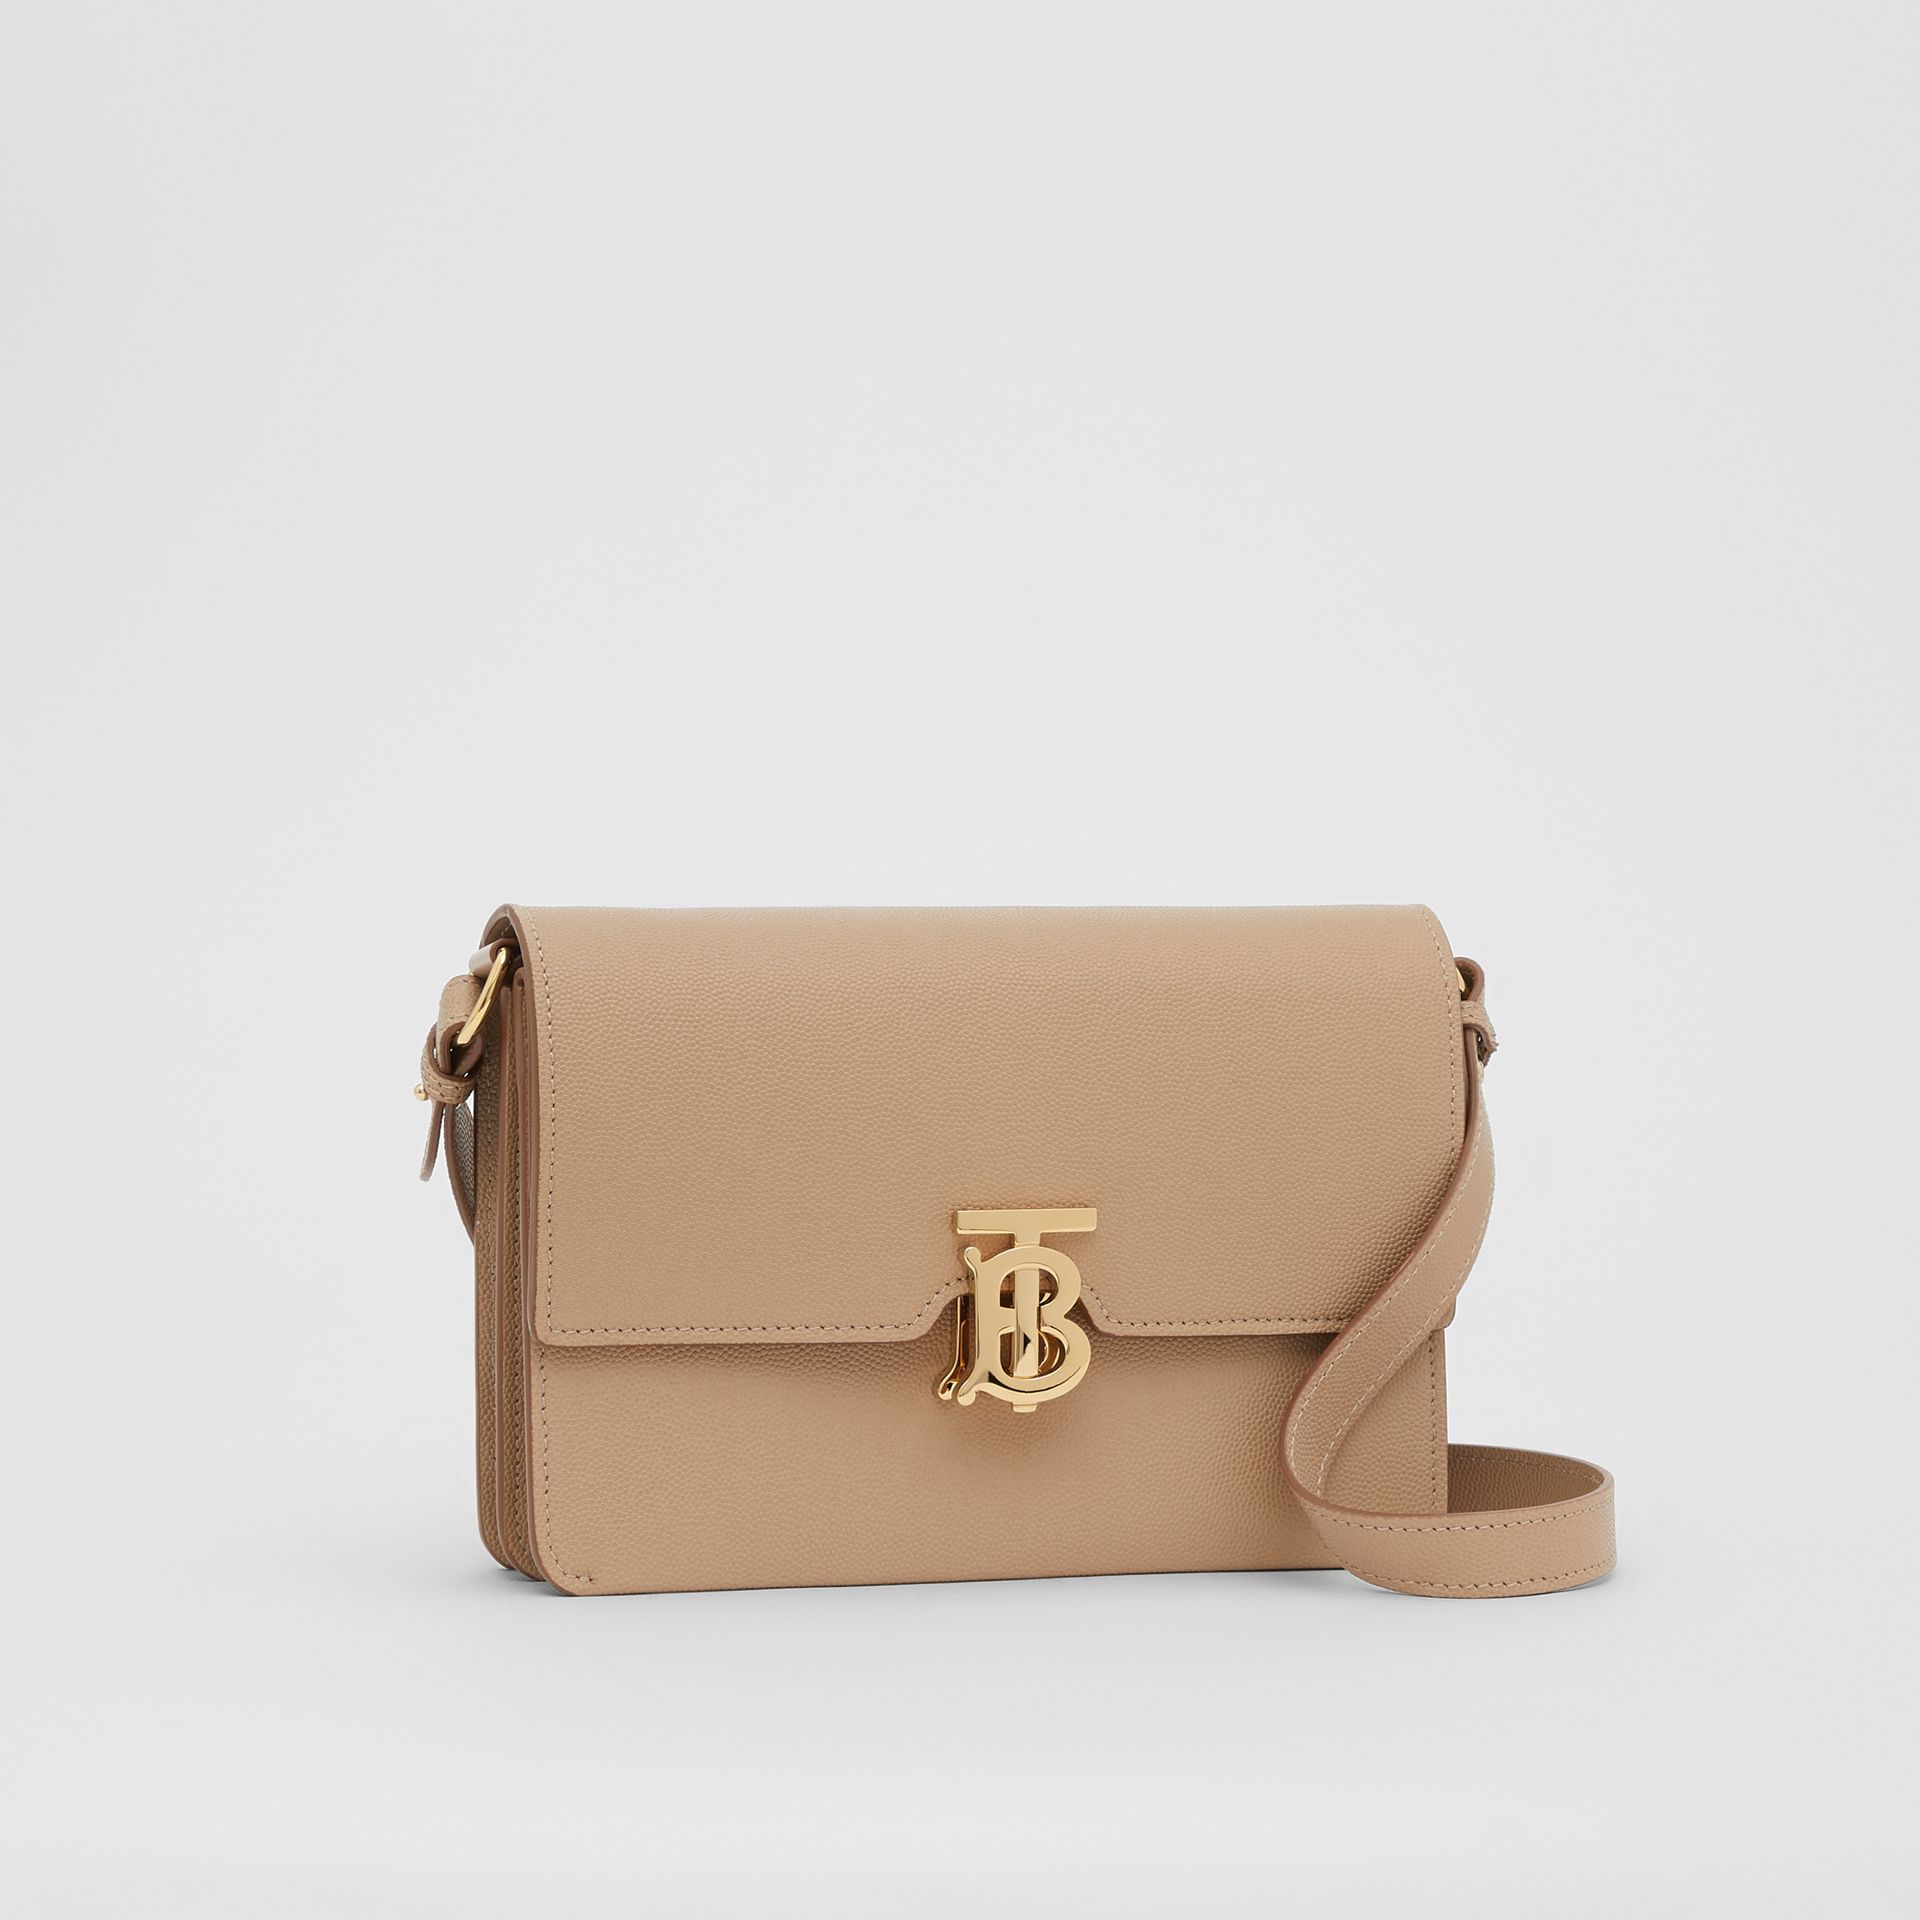 Small Monogram Motif Leather Crossbody Bag in Archive Beige - Women | Burberry - gallery image 6